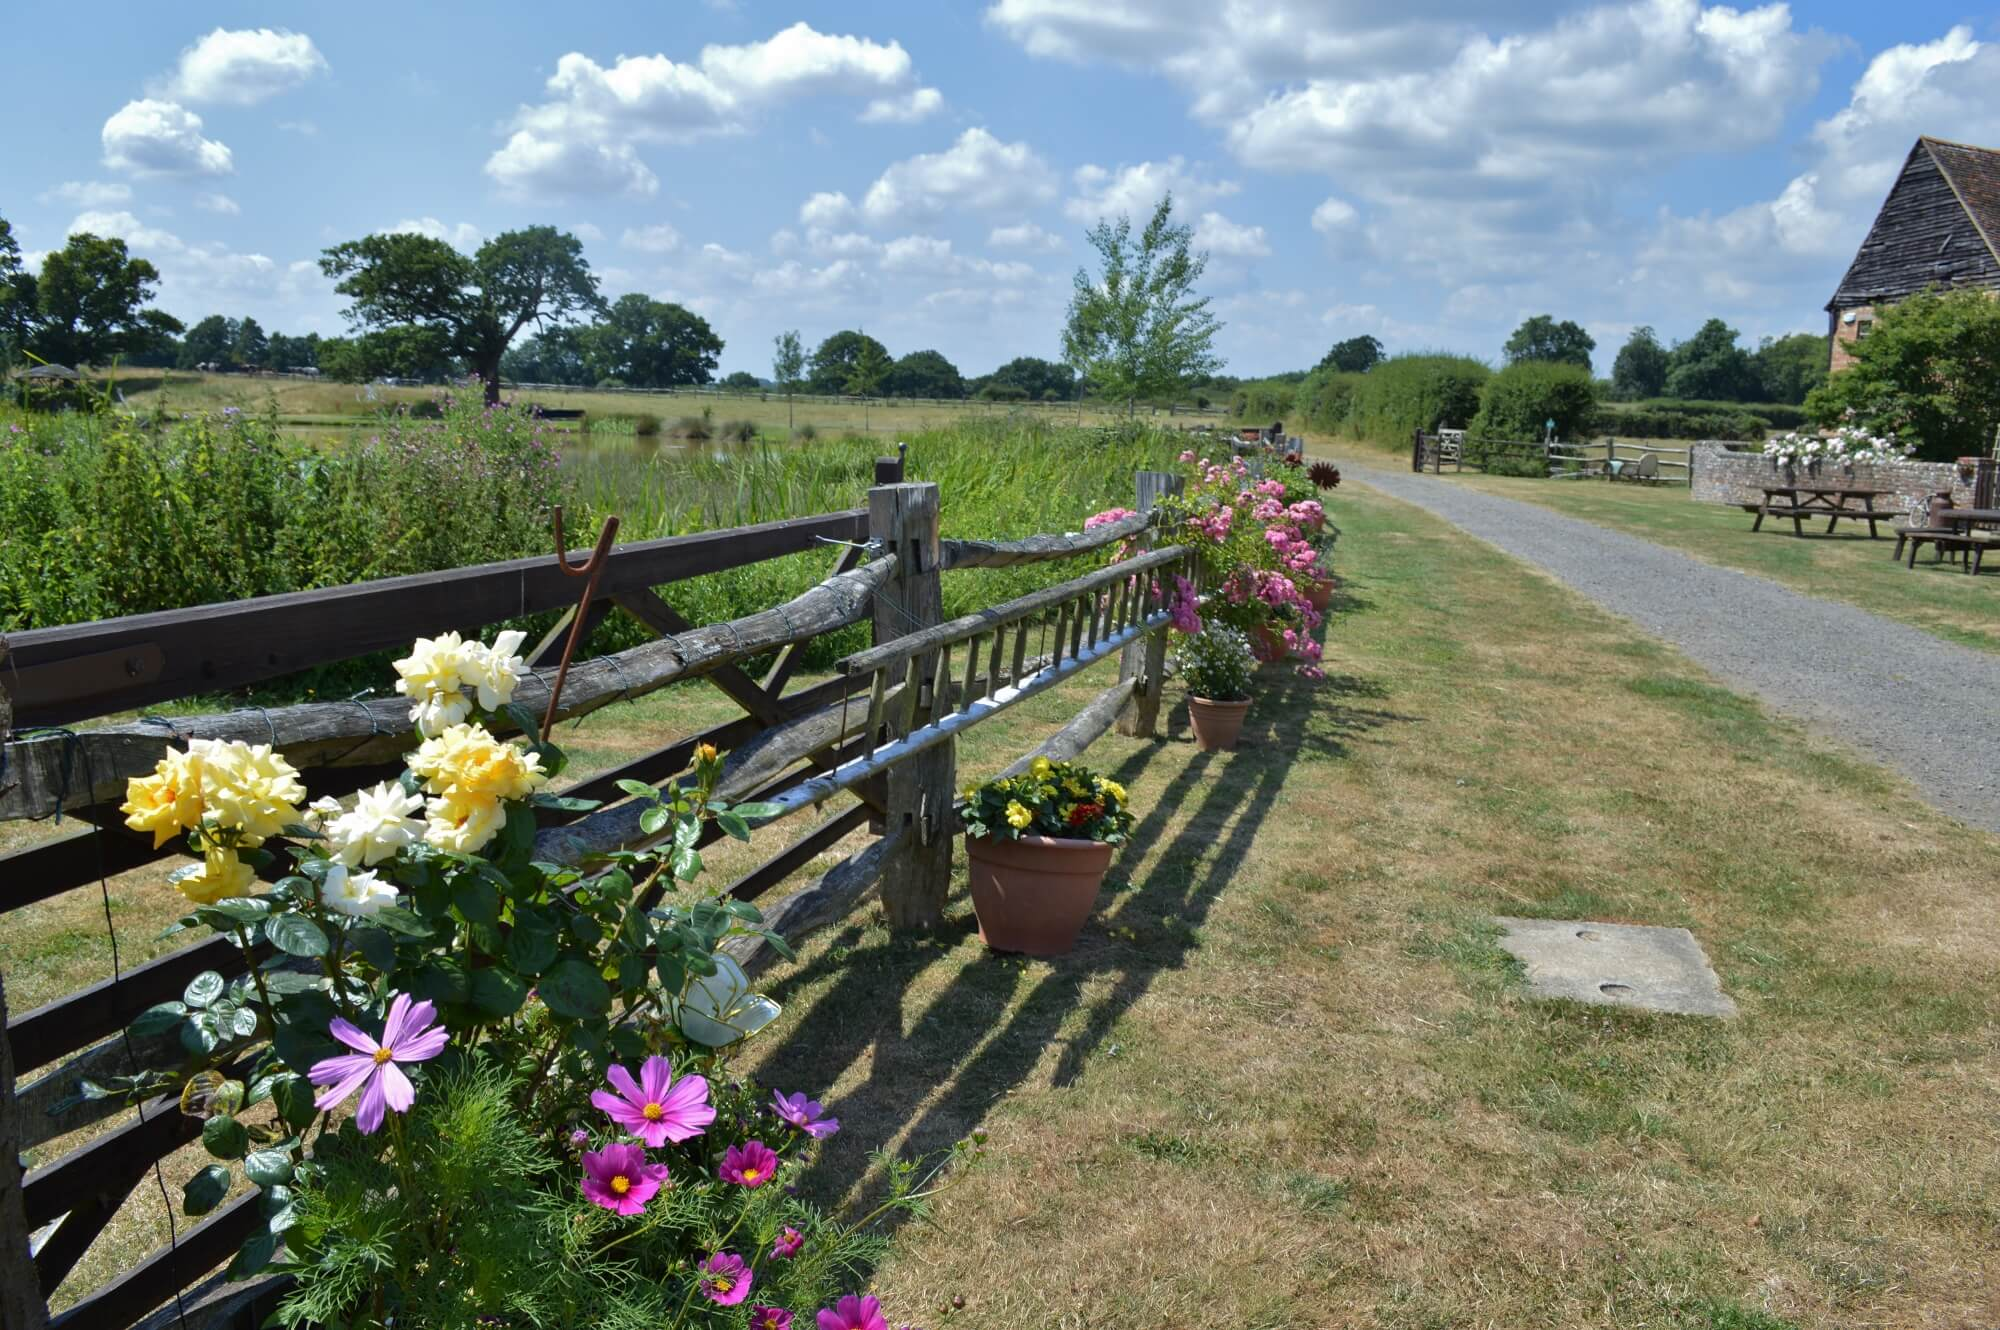 roses and cosmos at the house meadow wedding venue in kent